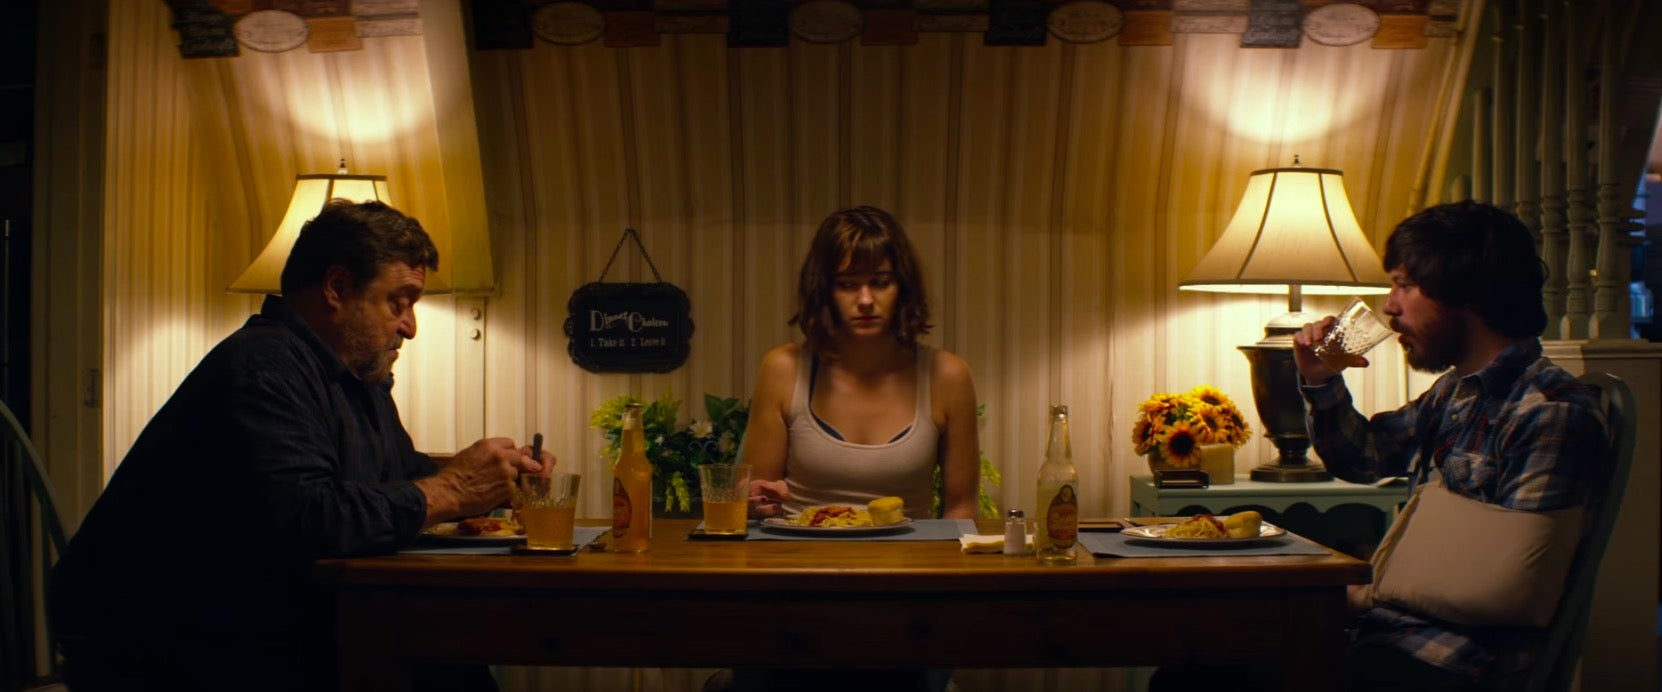 J.J. Abrams Warns 10 Cloverfield Lane Is Not Cloverfield 2